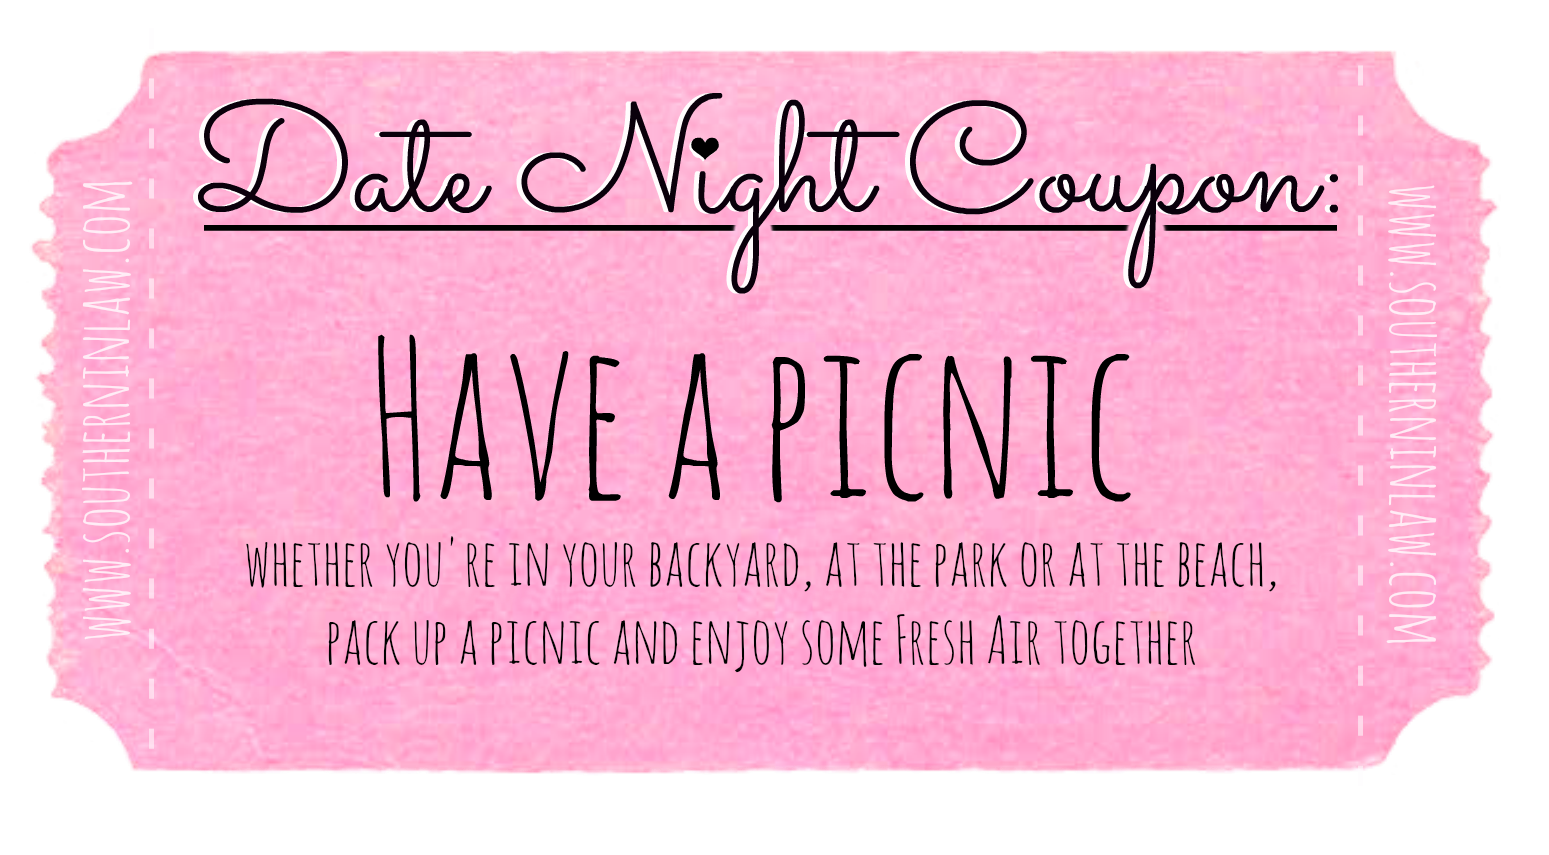 Affordable Date Night Ideas - Date Ideas Coupons - Have a Picnic